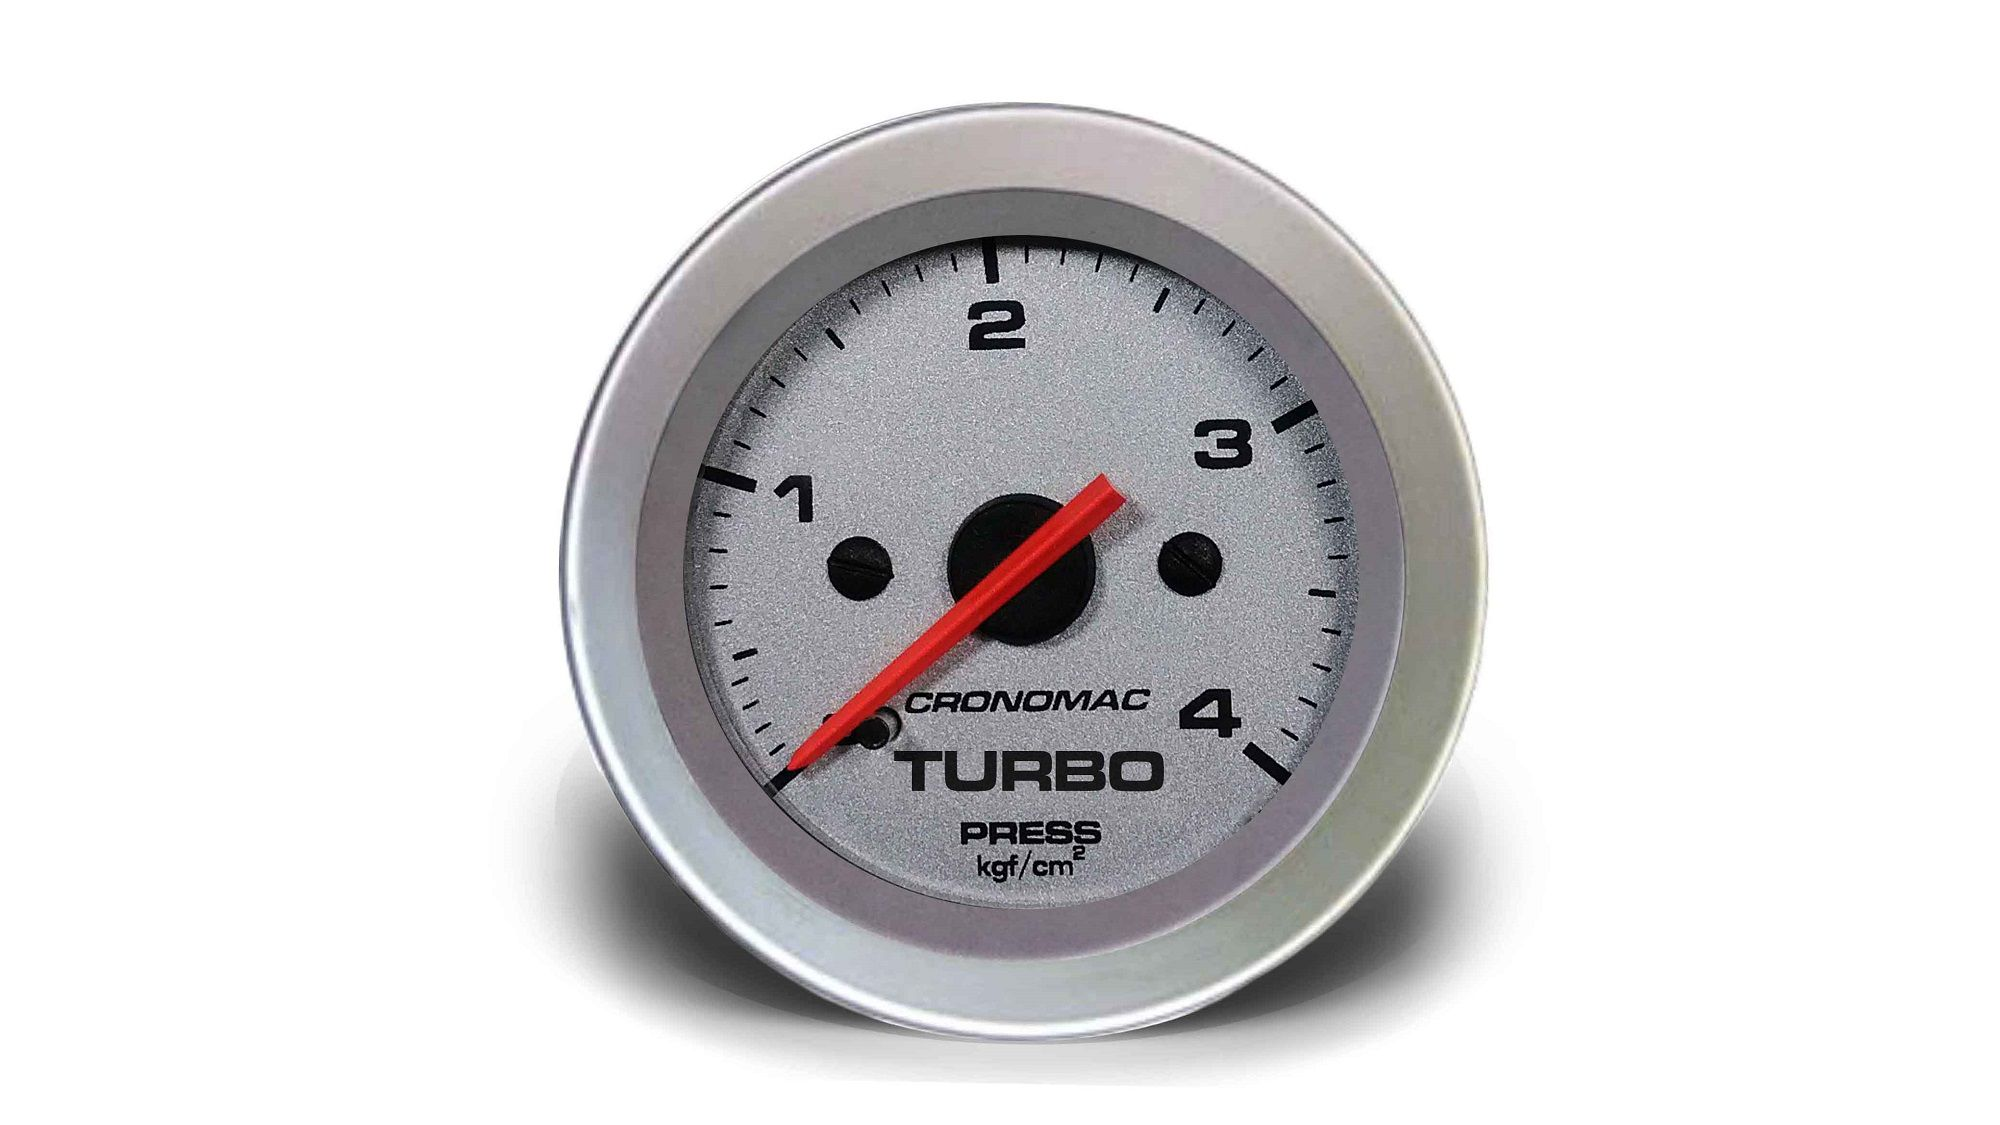 Relogio Pressao de Turbo 4kg Racing 52mm Cronomac